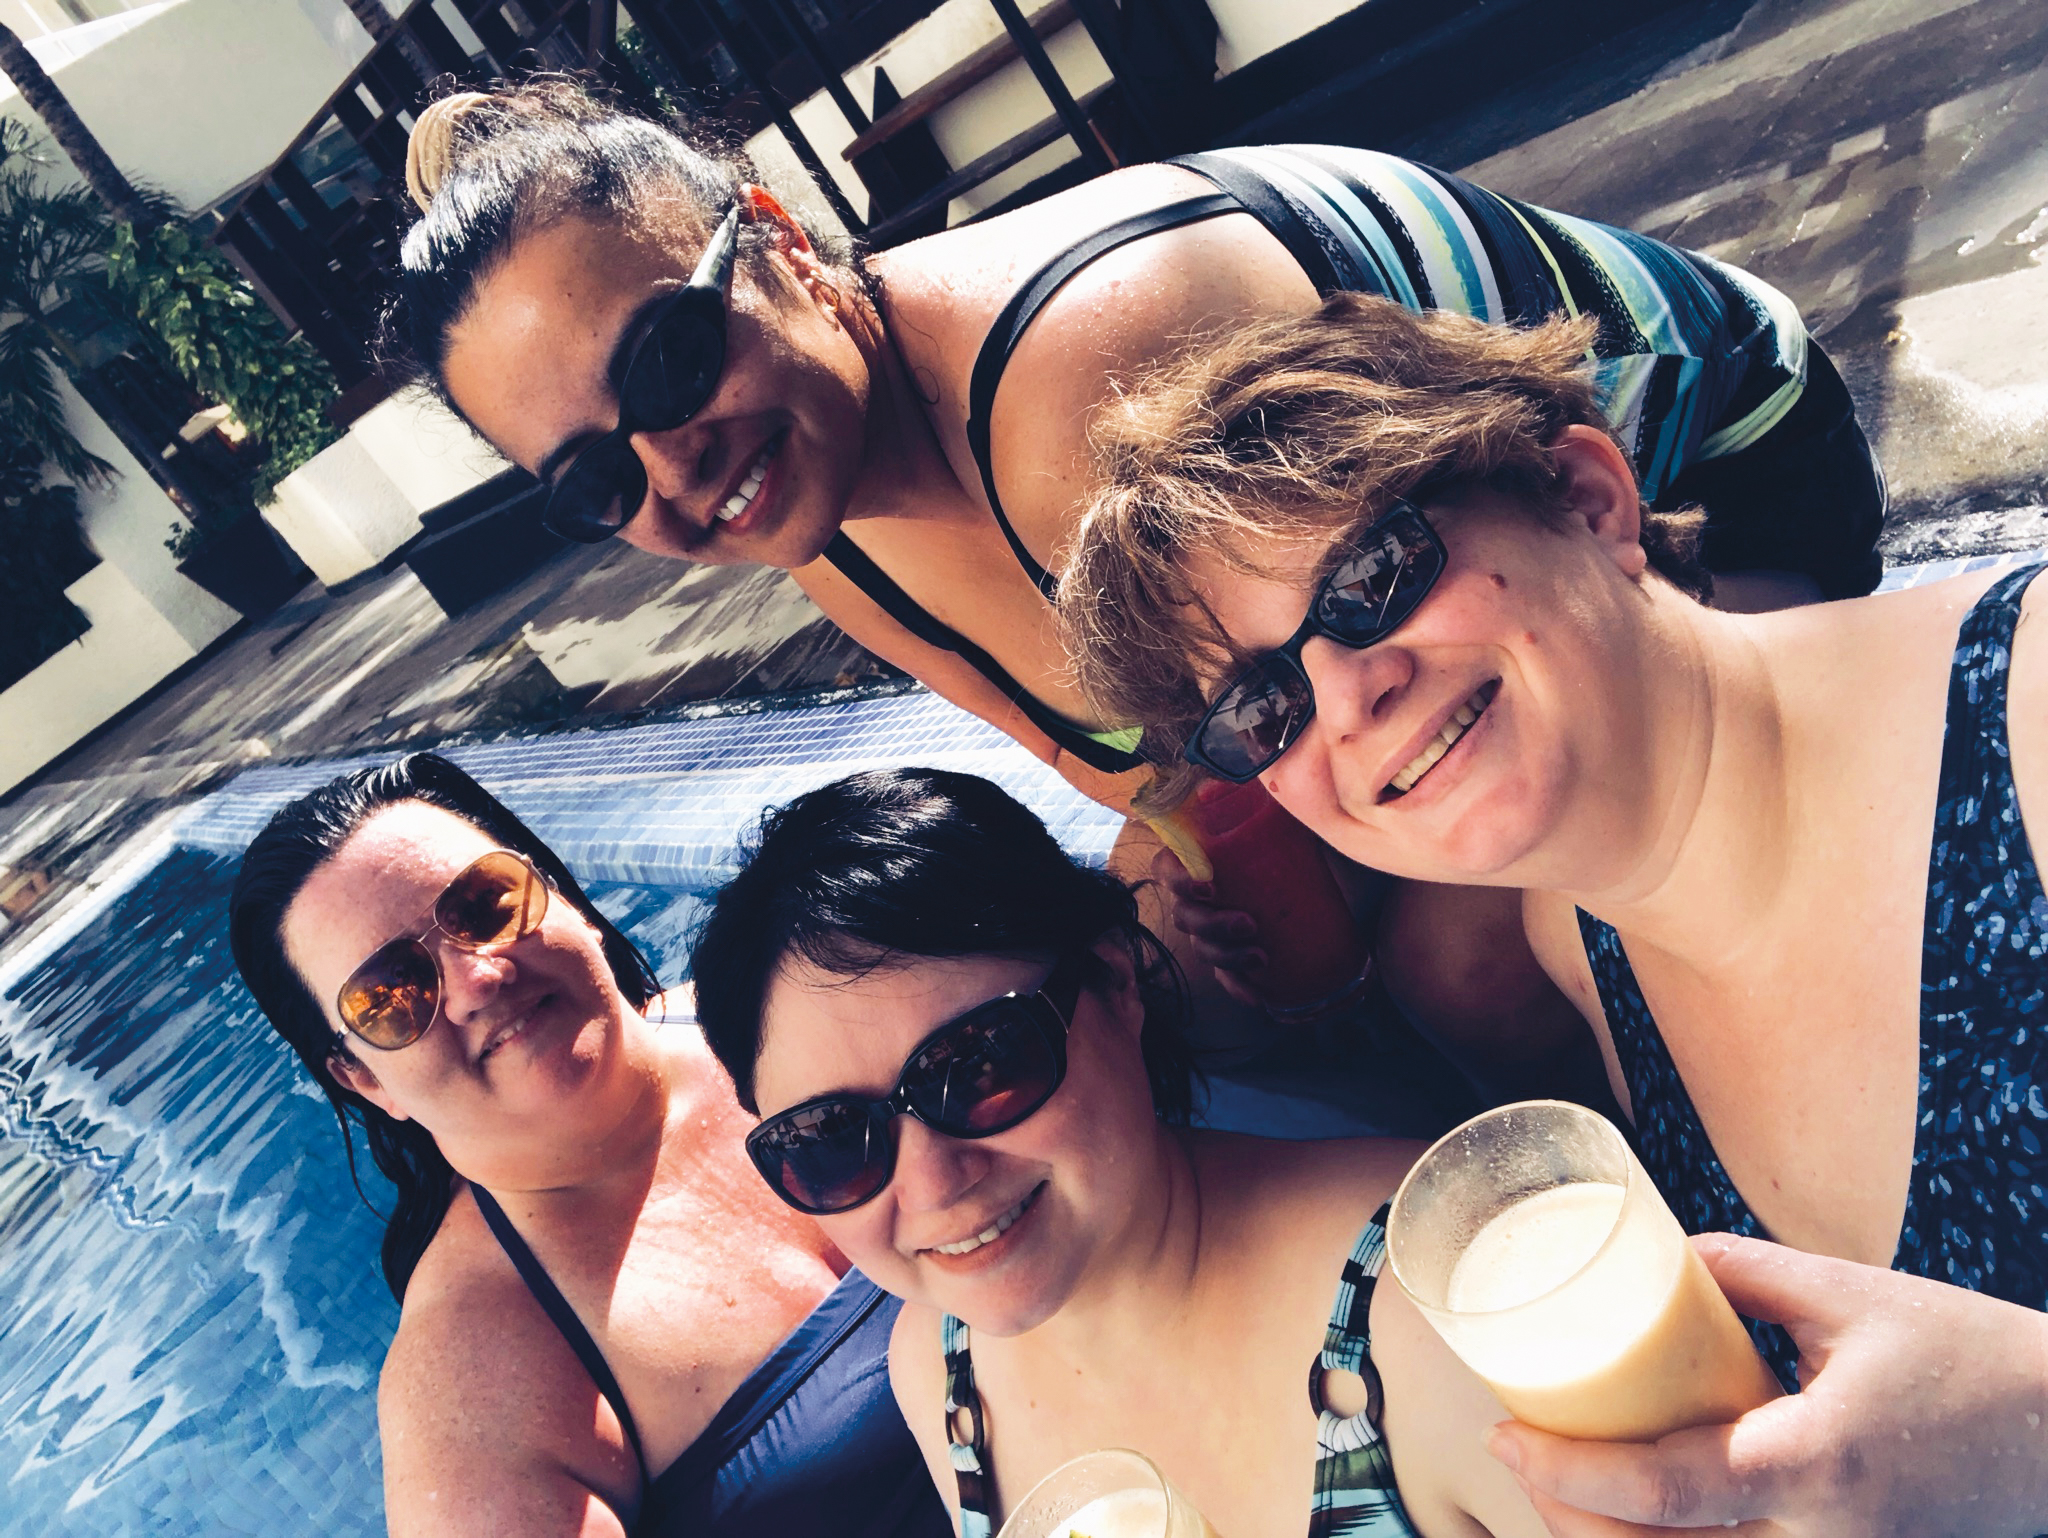 (L. to r.) Laurie Rockey '93, Lori Ann Sanchez '93, Heather Bragg '93, and Tania Montgomery '94 had a mini reunion in Cancun, Mexico.